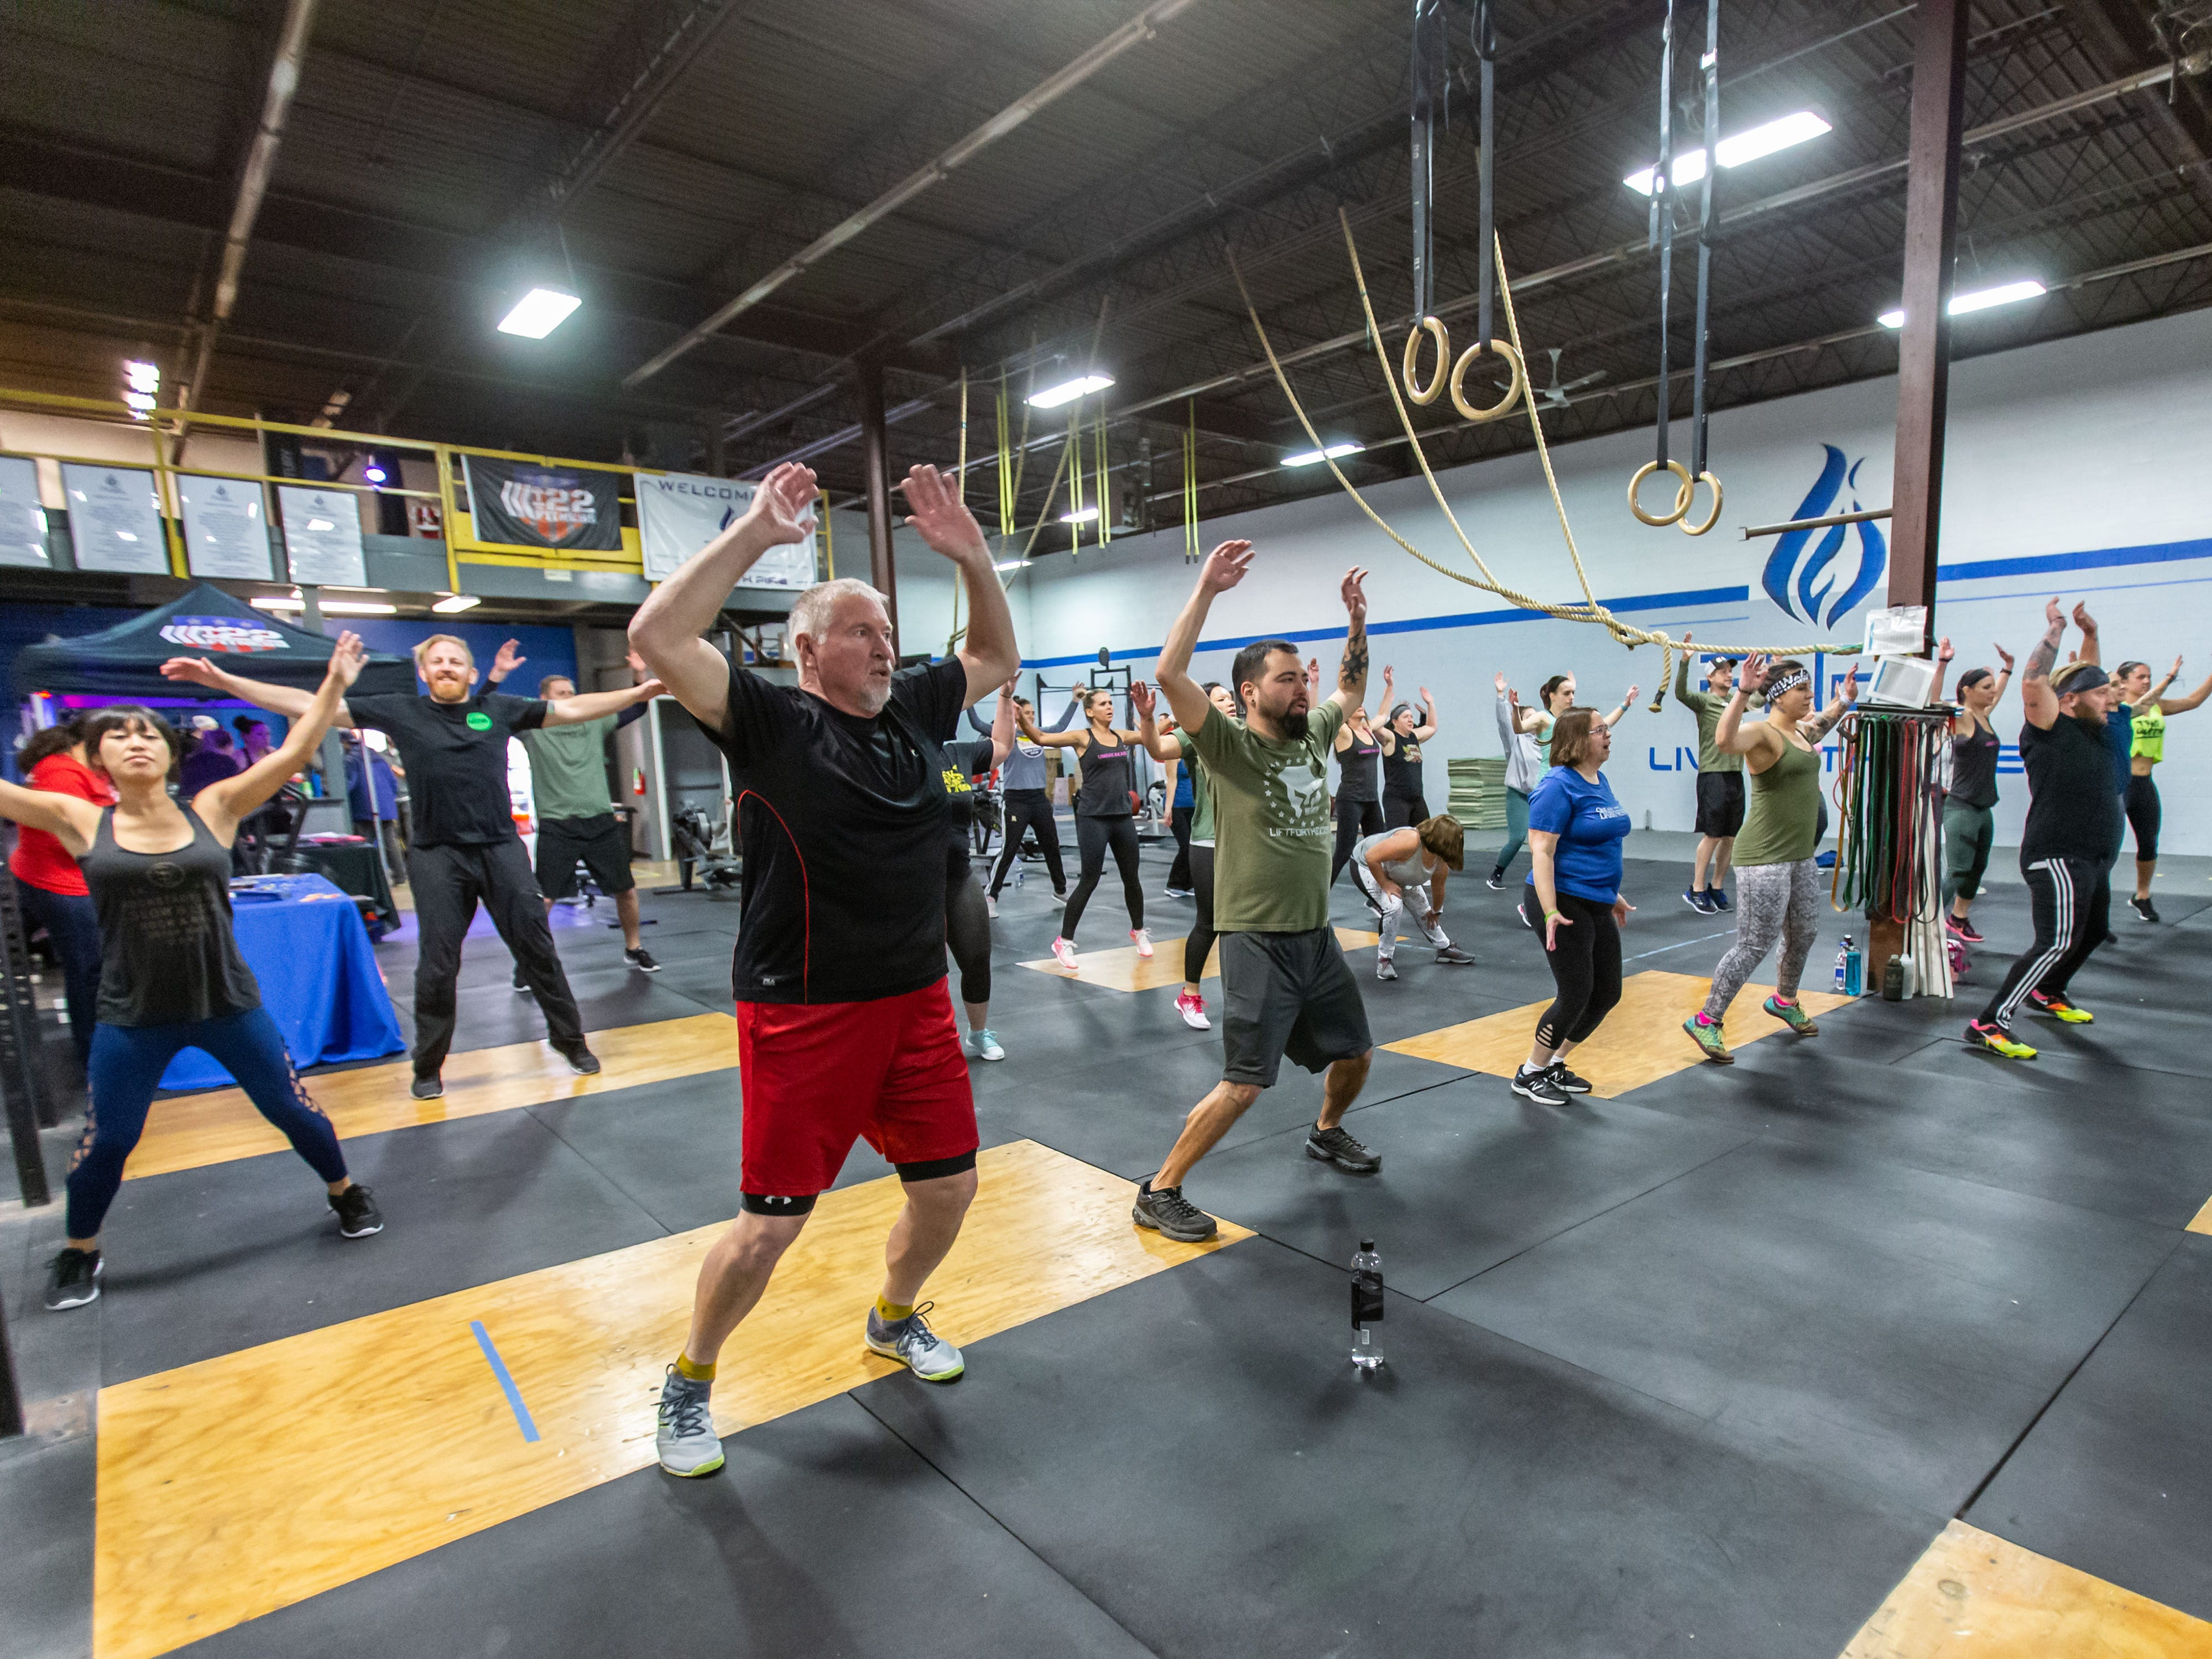 Participants work out during a weekly free fitness class taught by Army veteran Dan Newberry at FUEL Fitness in Oak Creek on Sunday, Jan. 6, 2019. Dan's organization, 22 Fitness Foundation Inc., is collecting donations for the American Foundation for Suicide Prevention (AFSP). The Jan. 6 class was a fundraiser and informational gathering for the AFSP.